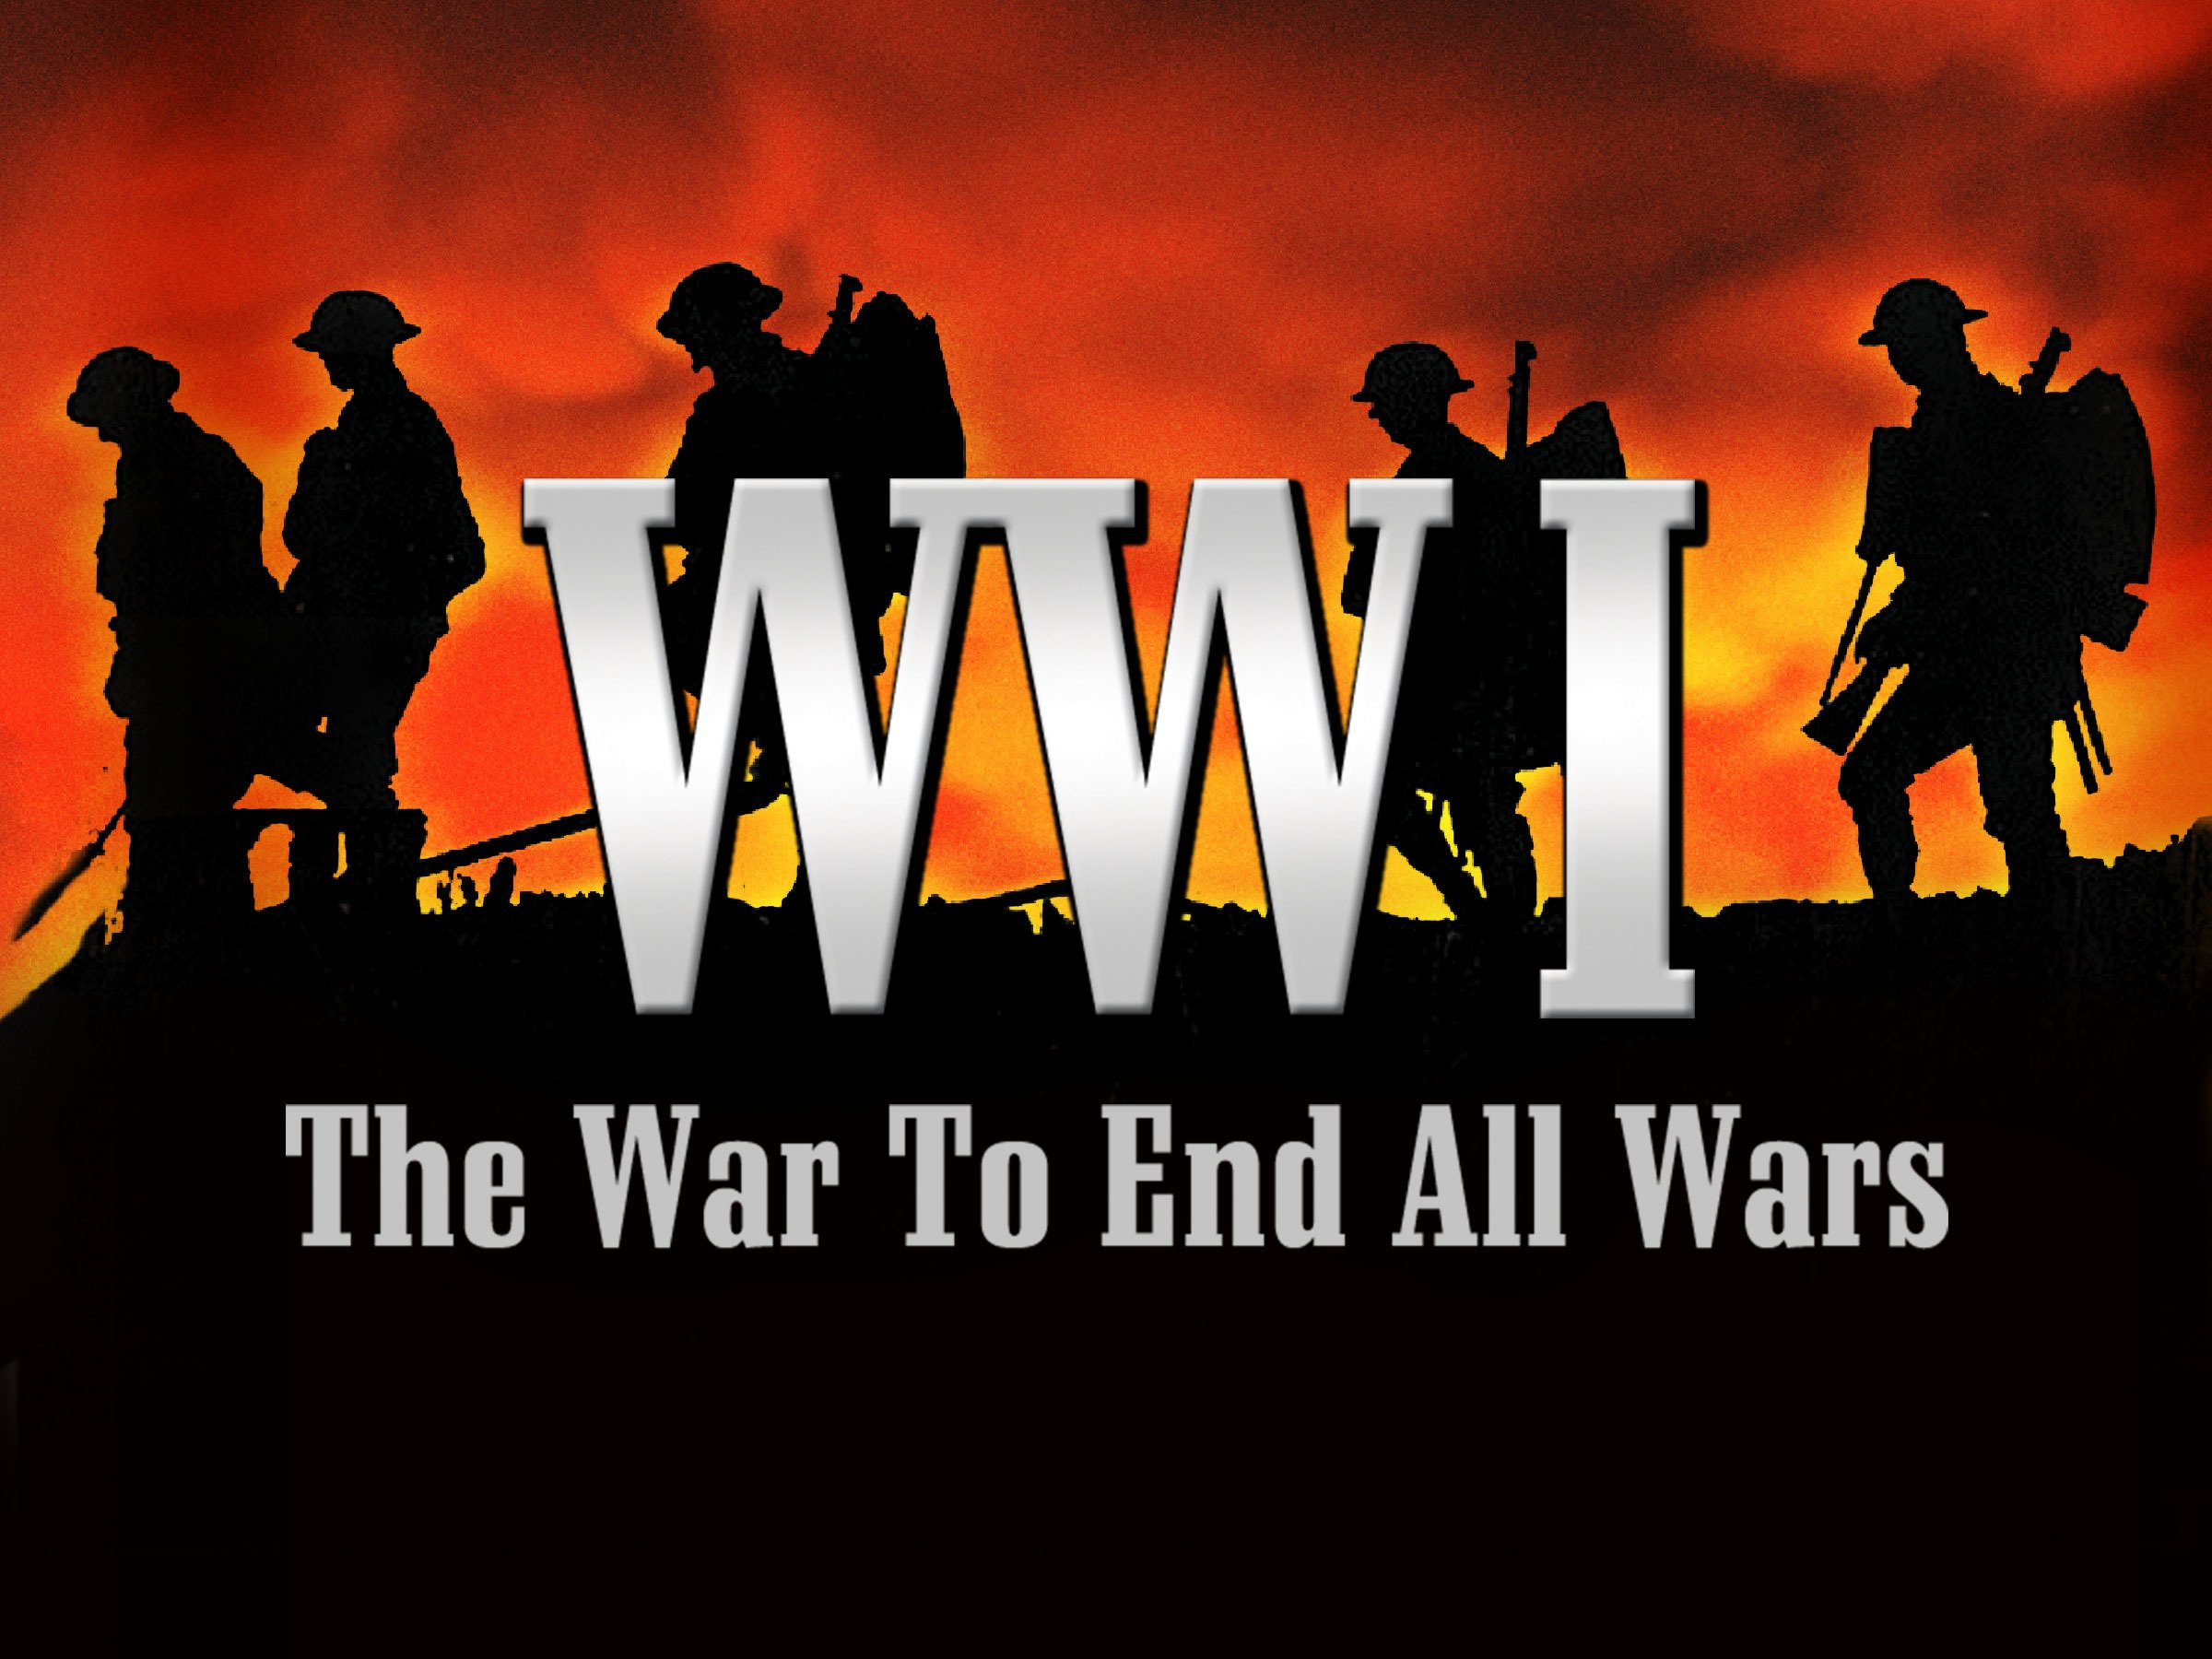 World War I: The War to End All Wars